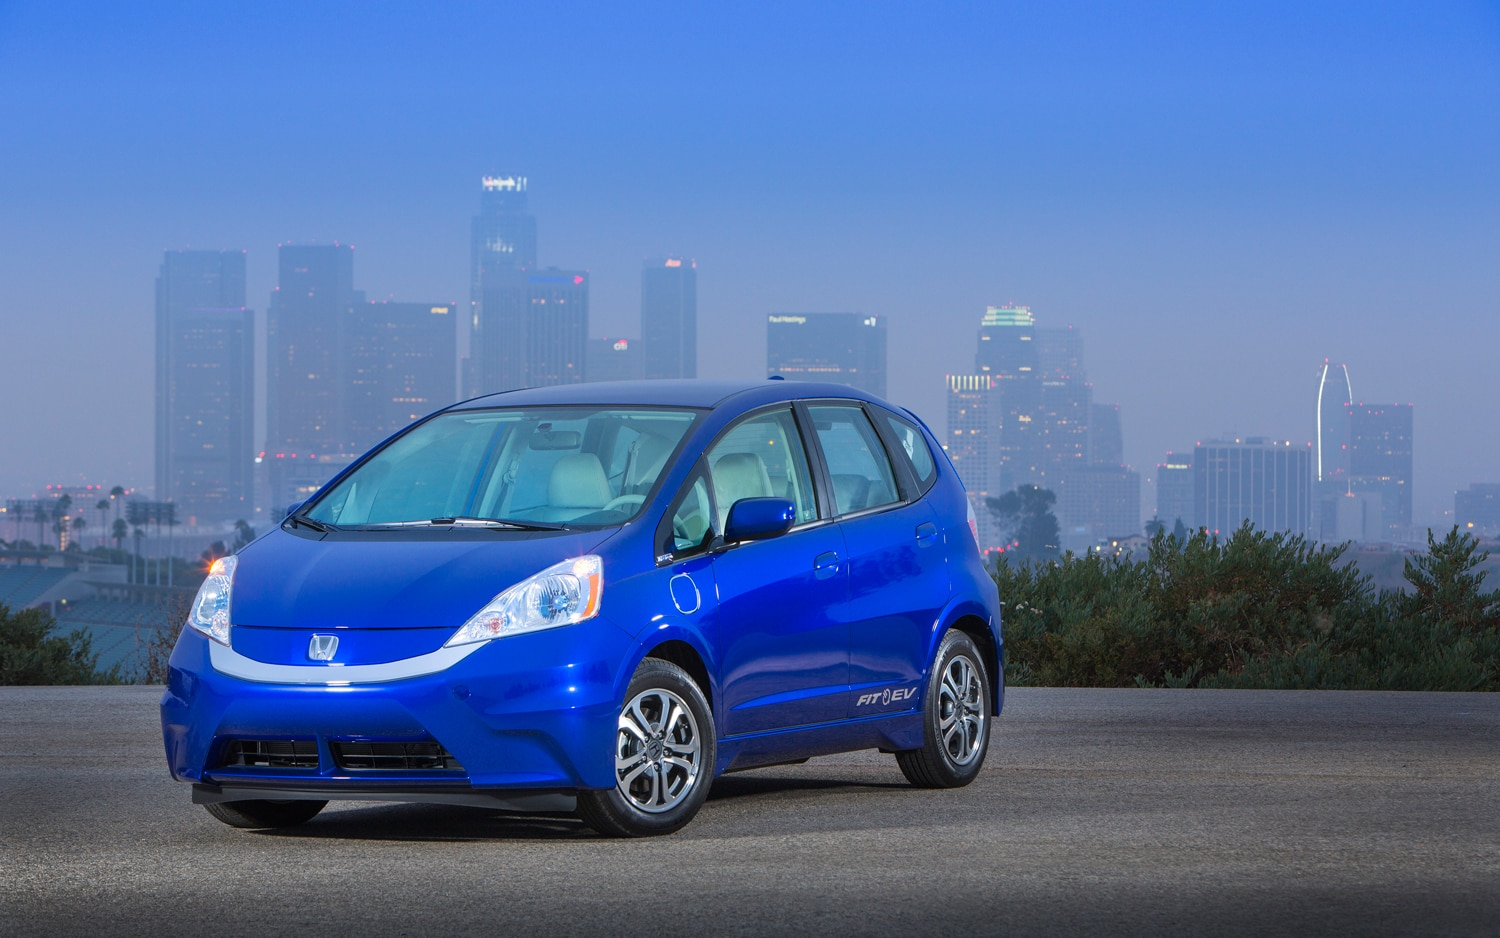 Honda honda fit ev range : First Drive: 2013 Honda Fit EV - Automobile Magazine